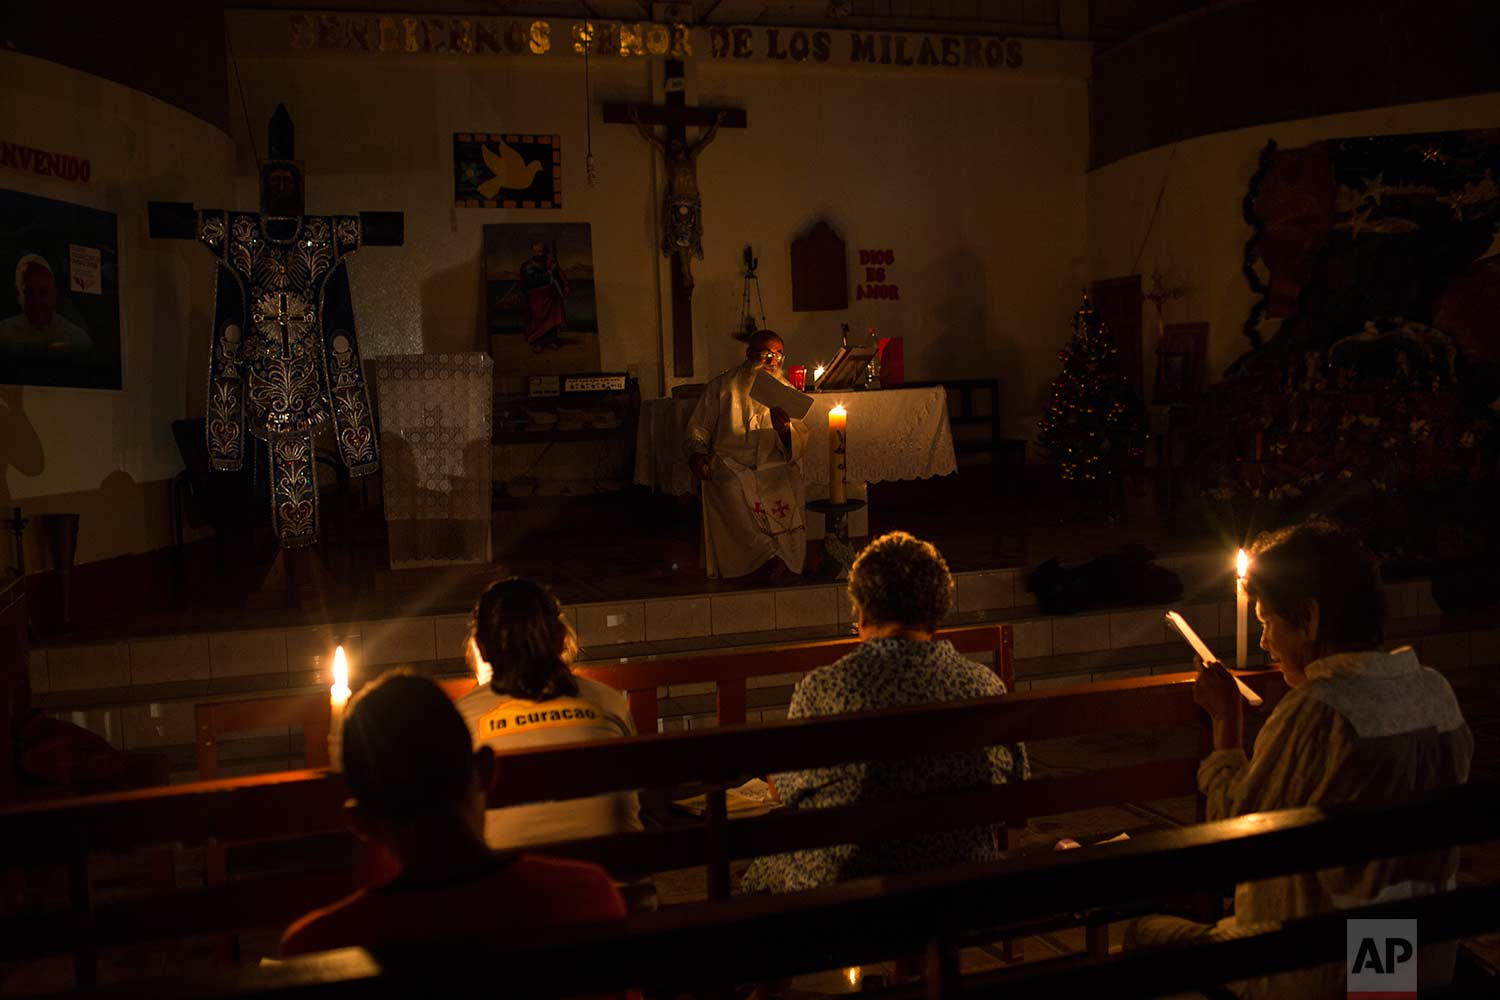 In this Jan. 8, 2018 photo, Father Pablo Zabala, better known as Padre Pablo, celebrates Mass illuminated by candlelight at a church in Boca Colorado, part of Peru's Madre de Dios region in the Amazon. The town was experiencing a power outage that lasted more than 30 hours. (AP Photo/Rodrigo Abd) |  See these photos on AP Images